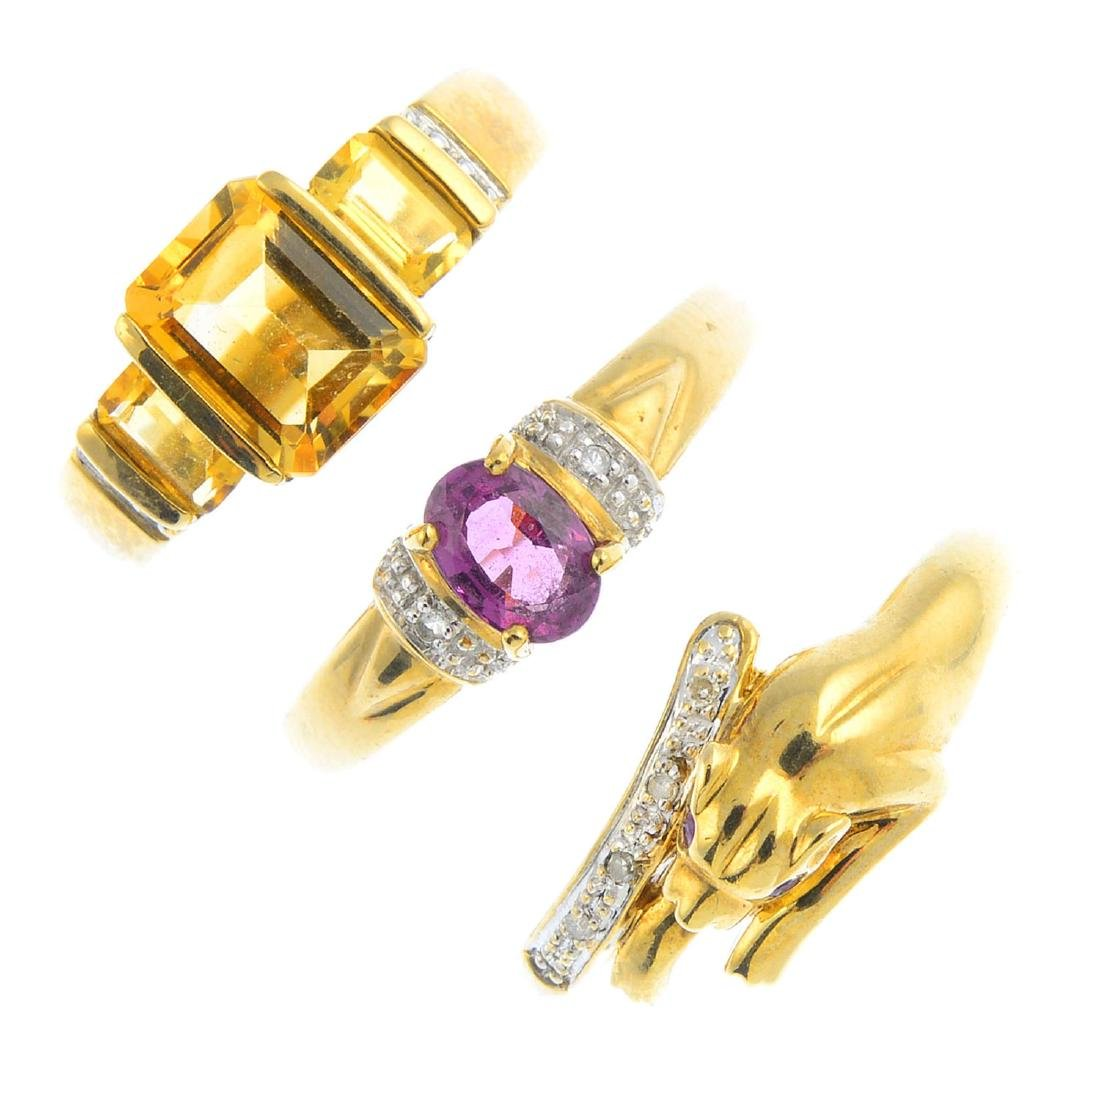 Four 9ct gold gem-set rings and a pair of earrings. To